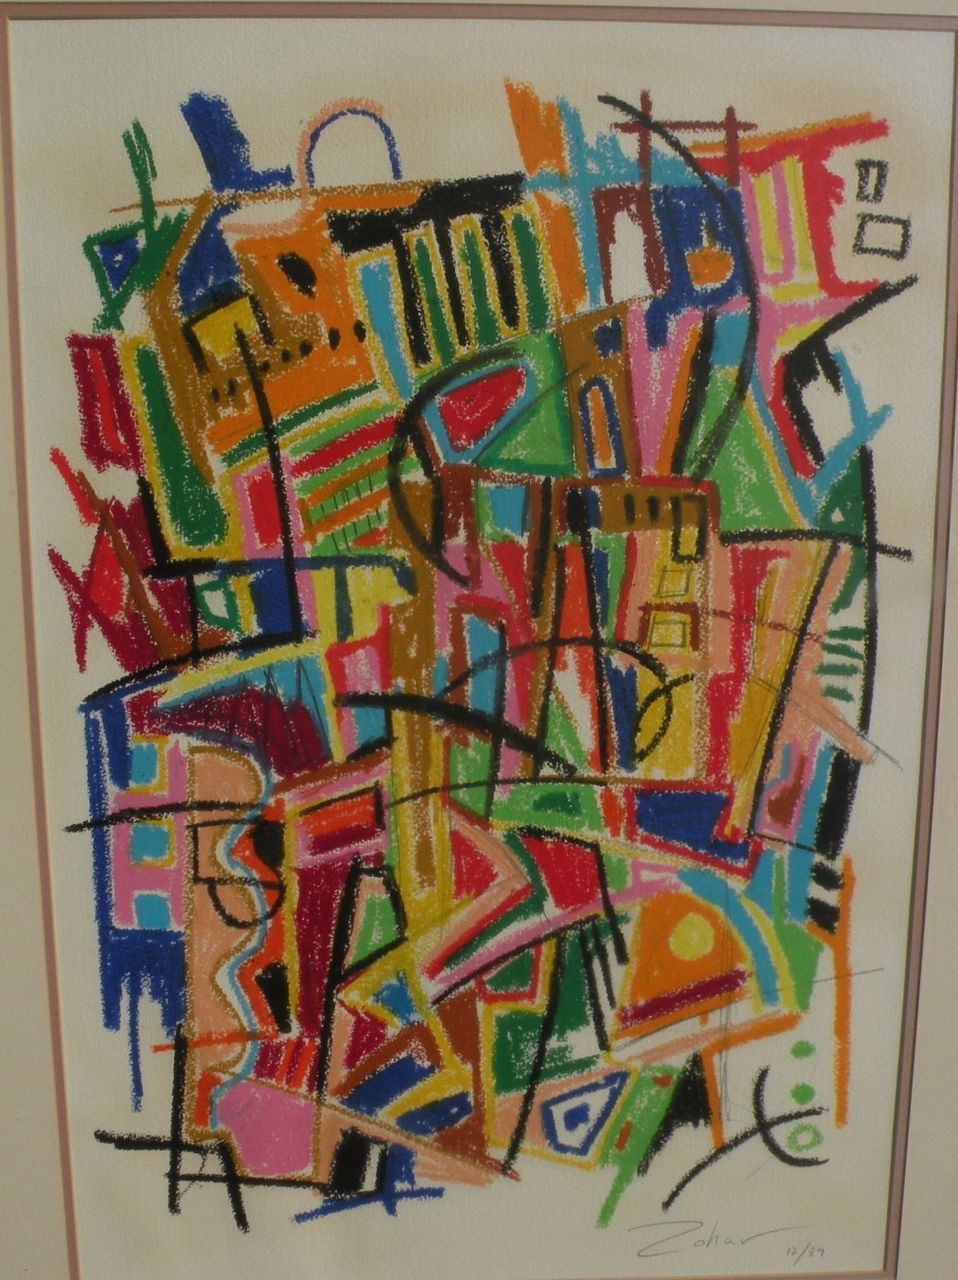 Colorful abstract 1989 drawing signed ZOHAR